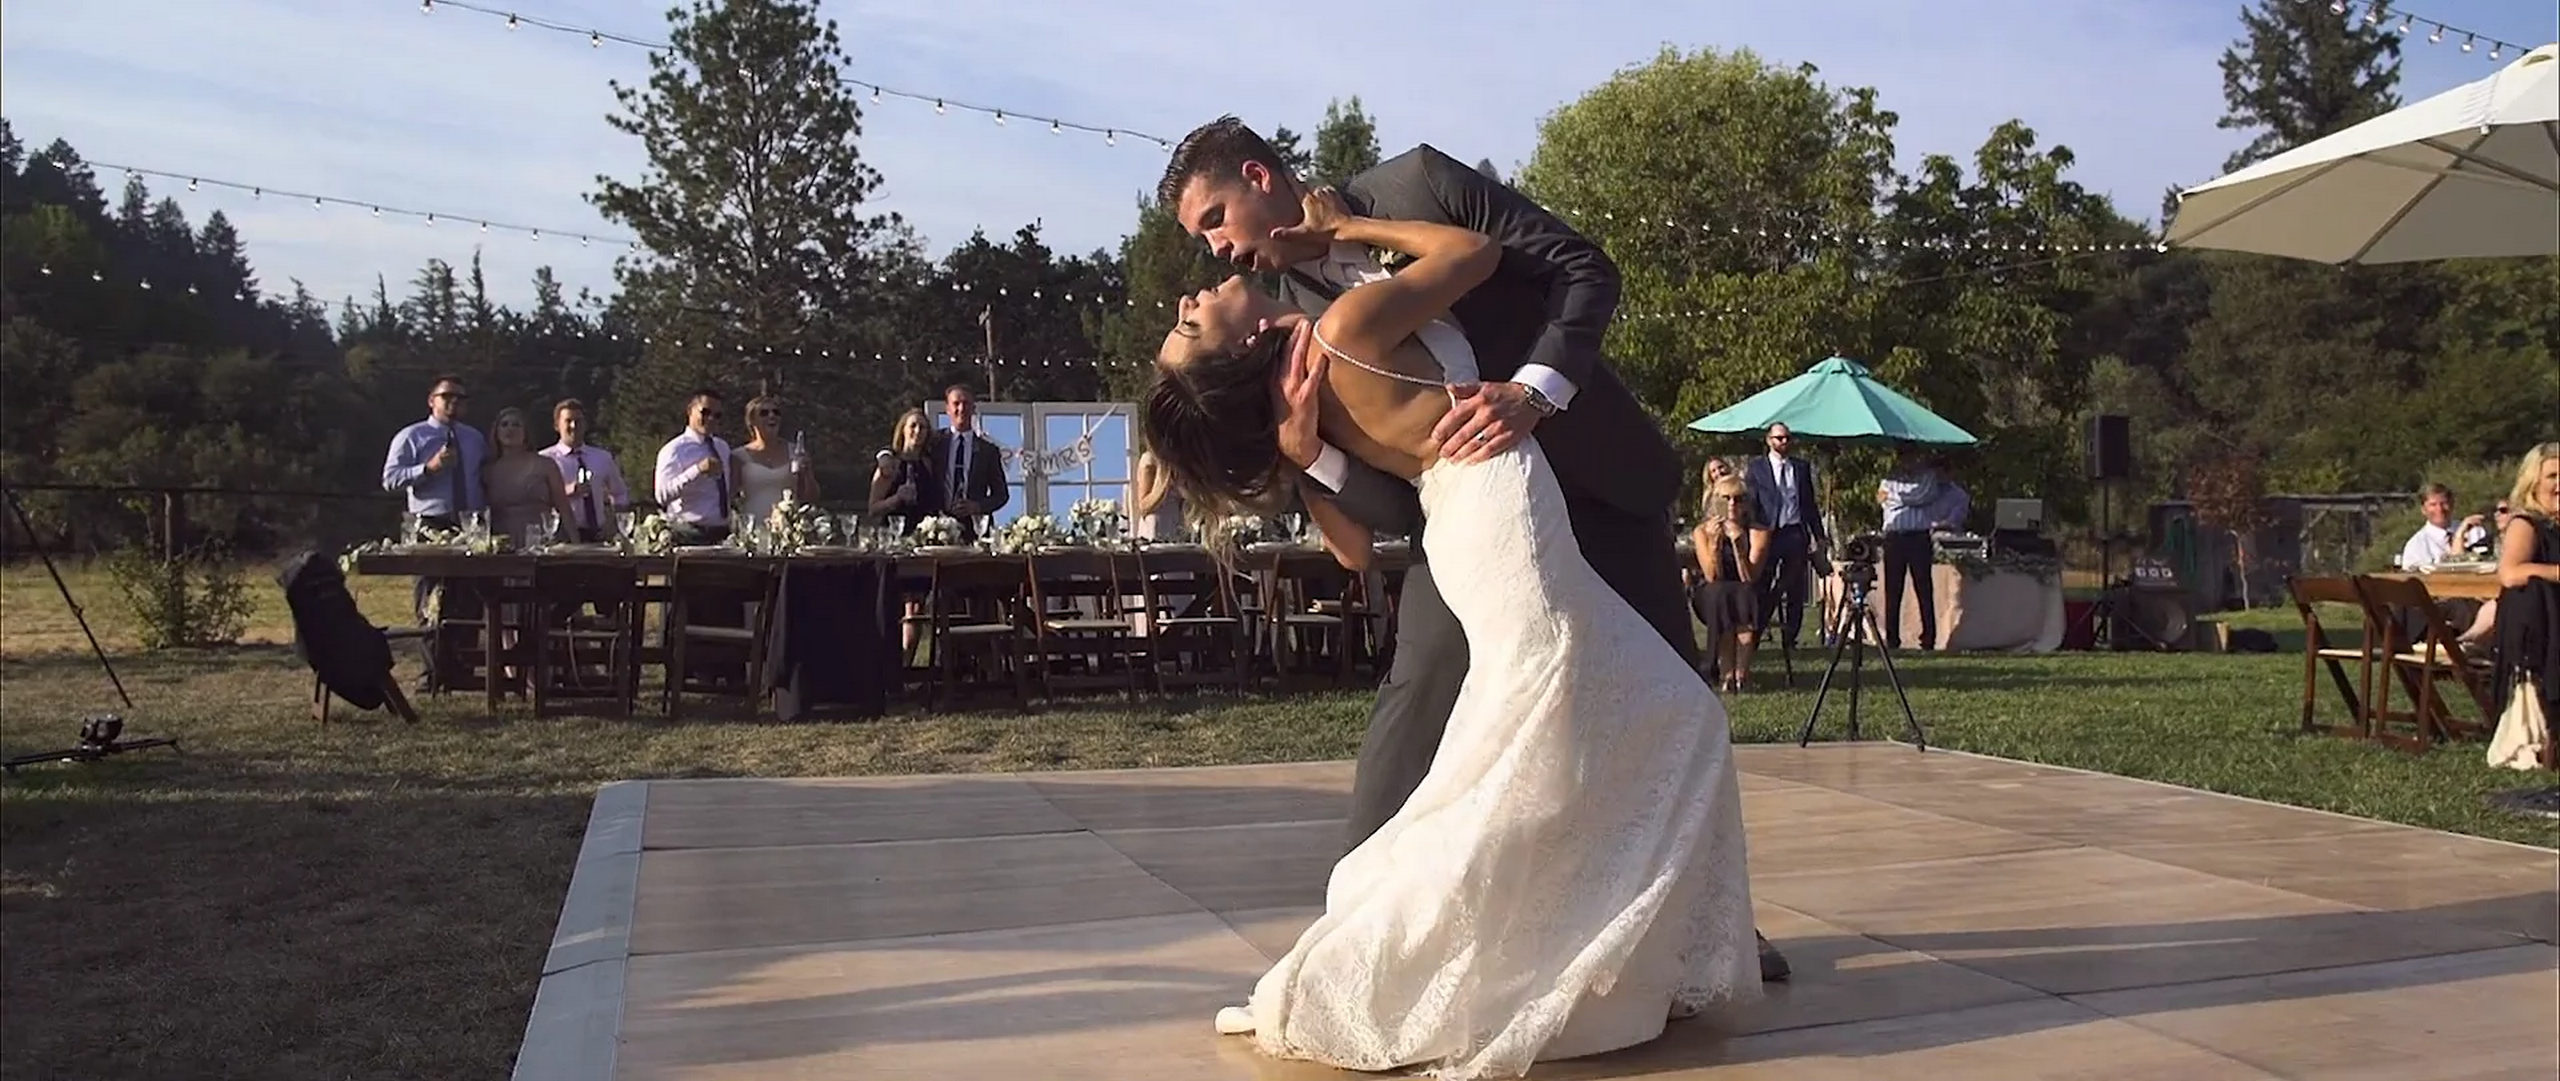 Audrey and Jason Bridgewater Farm Scotts Valley Santa Cruz wedding videographer